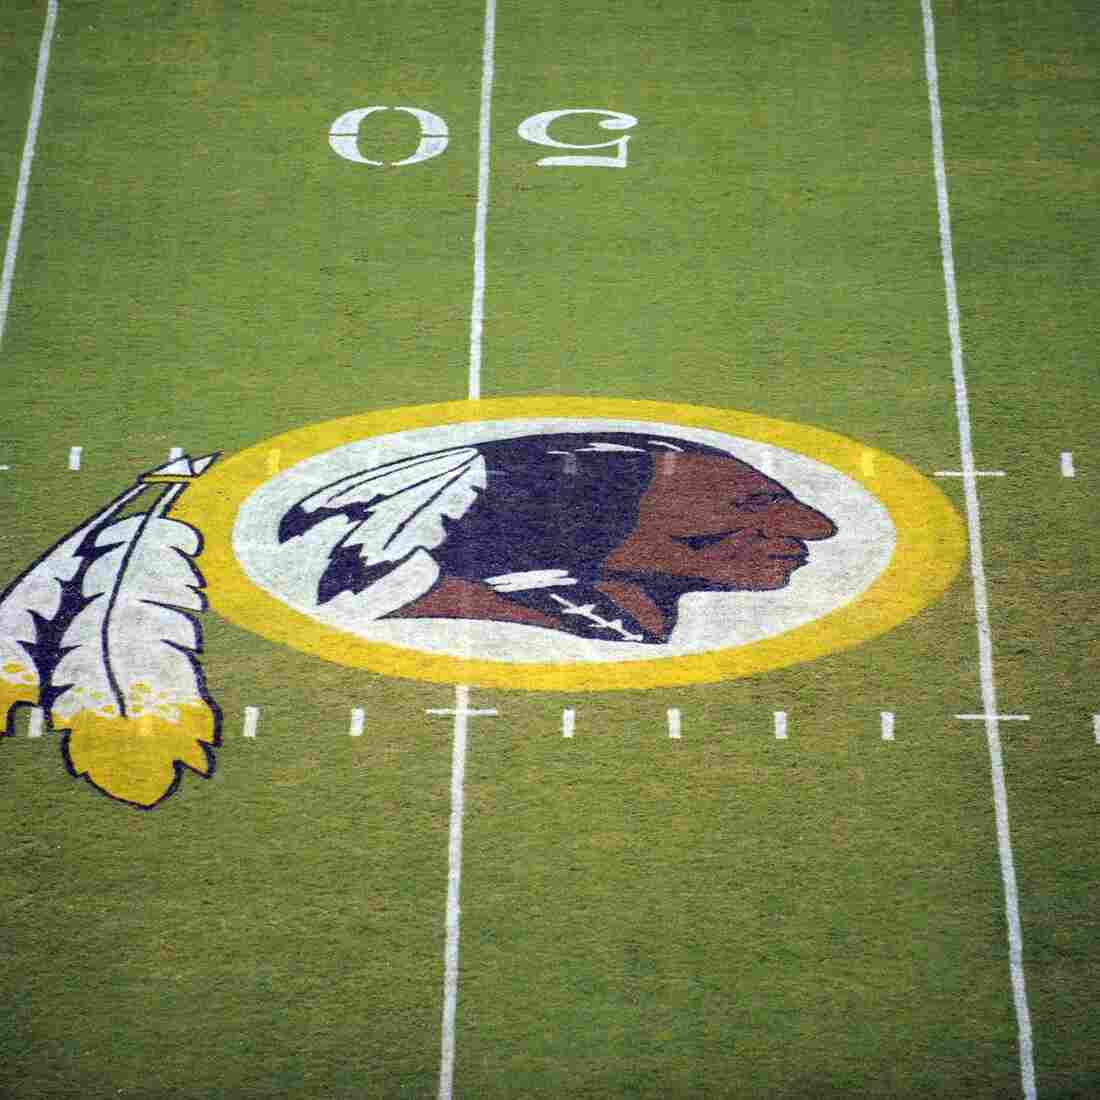 The Washington Football Team That Must Not Be Named